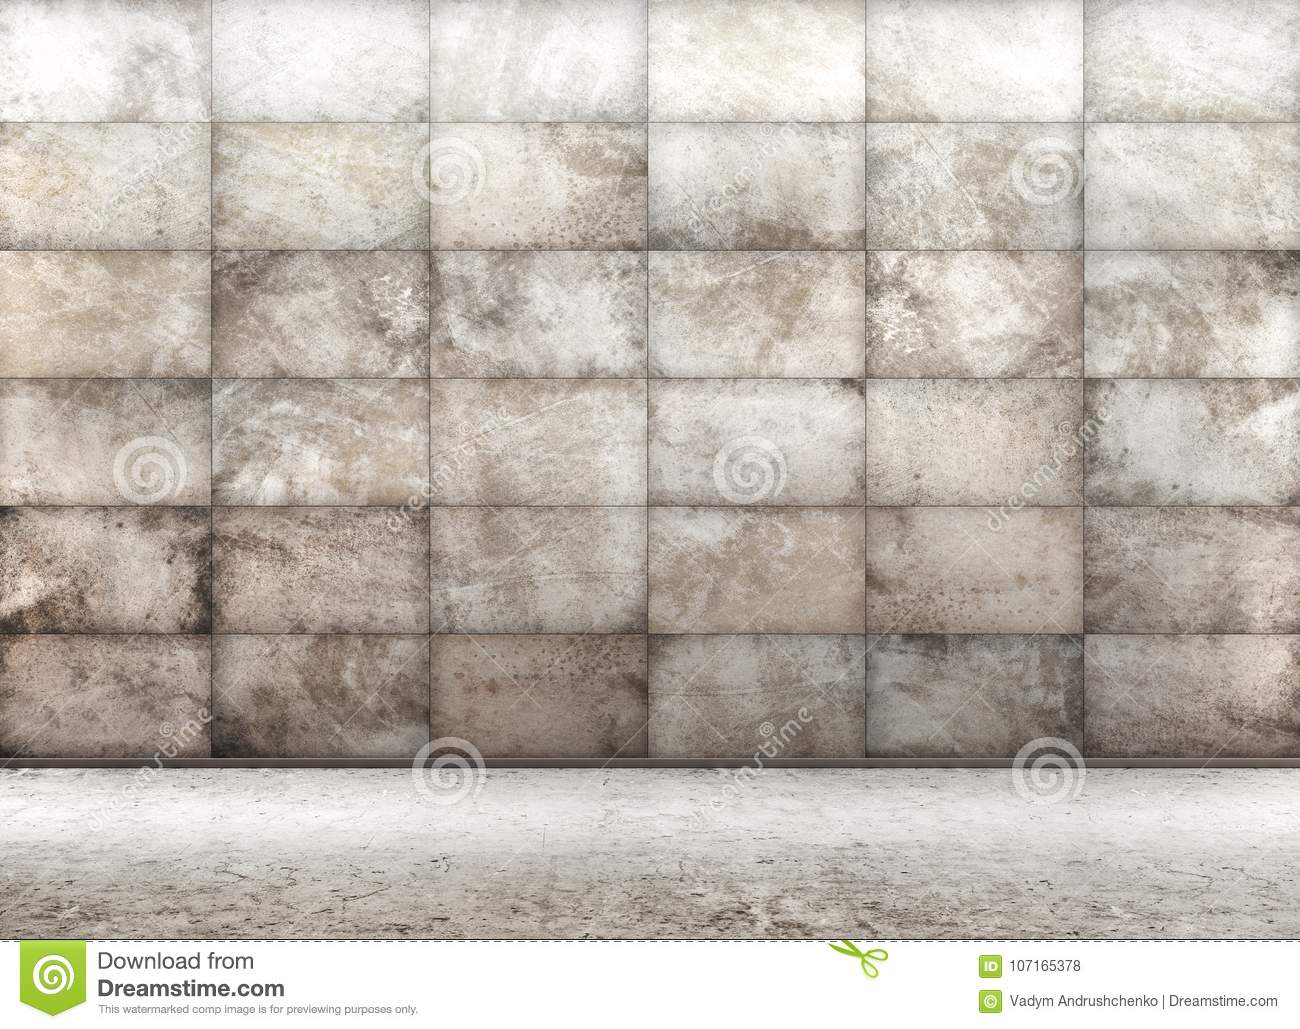 Concrete tiled wall, interior background 3d rendering